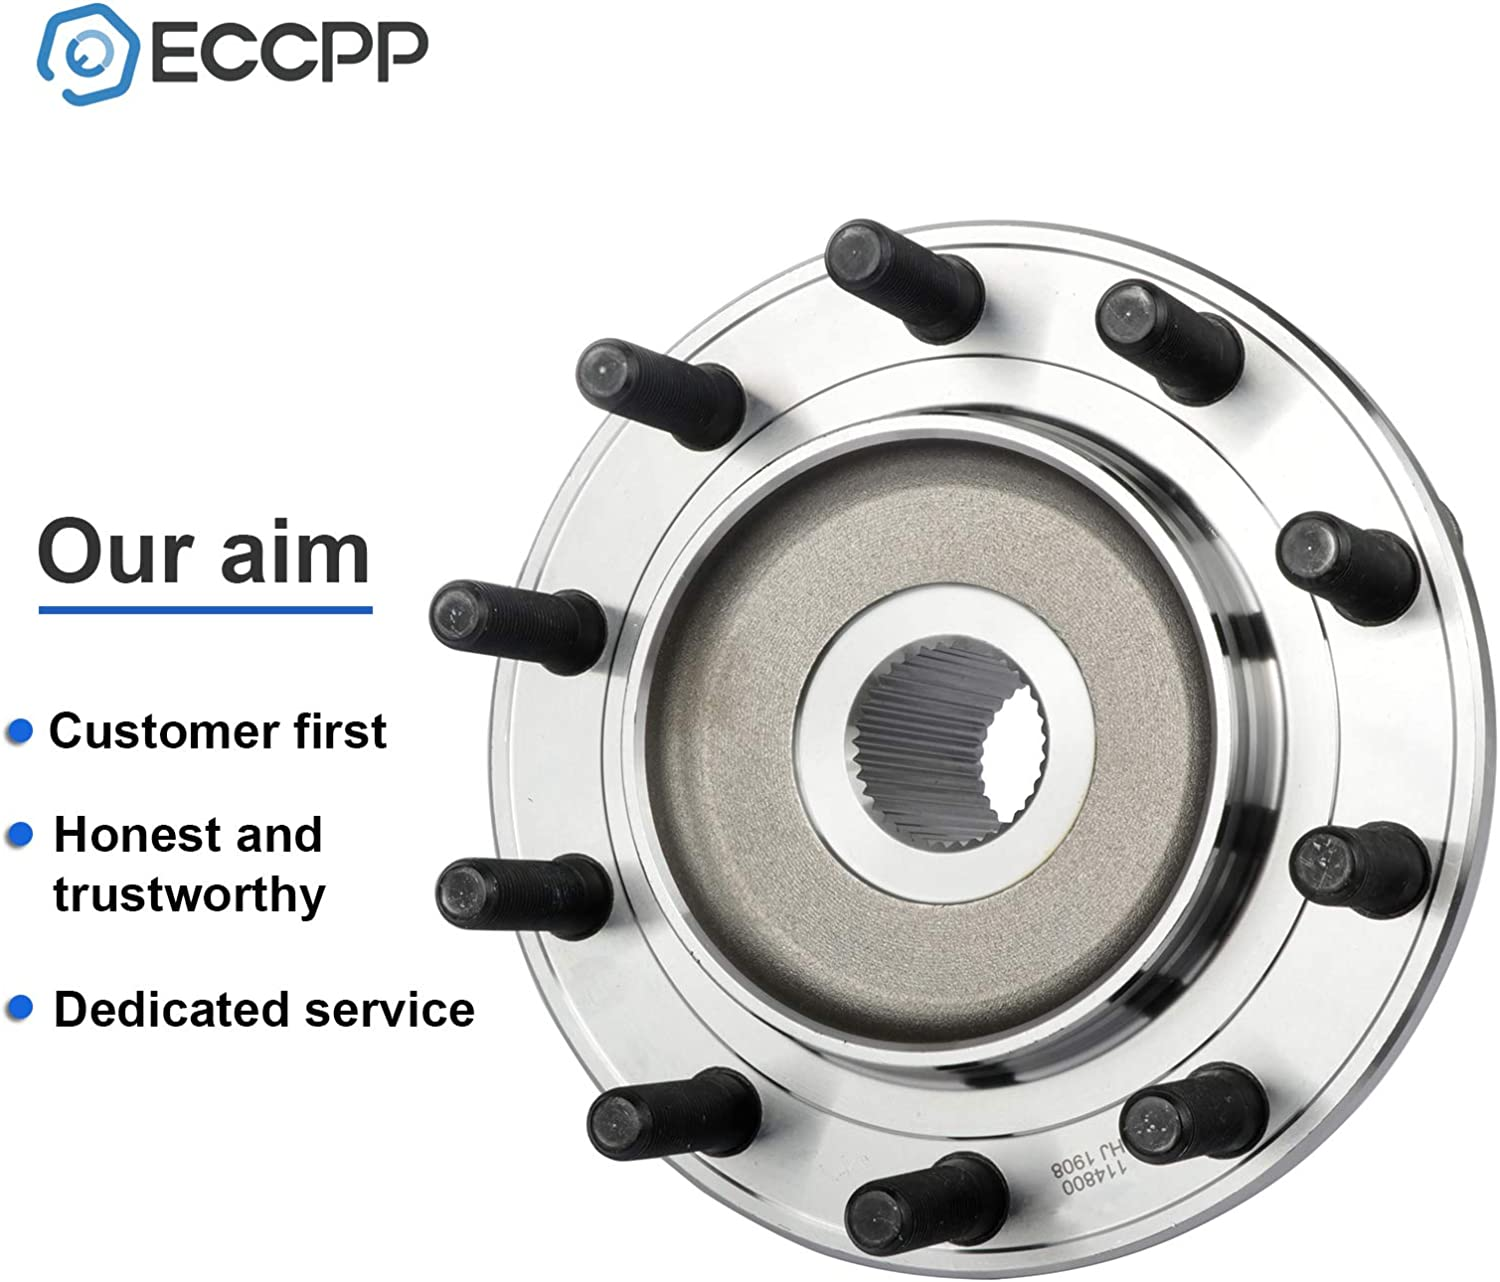 ECCPP Wheel Hub and Bearing Assembly Front Axle 515102 fit for 2008-2010 Dodge Ram 4500 2008-2010 Dodge Ram 5500 Replacement for Wheel Bearing Hubs 10 Lugs 1 pcs